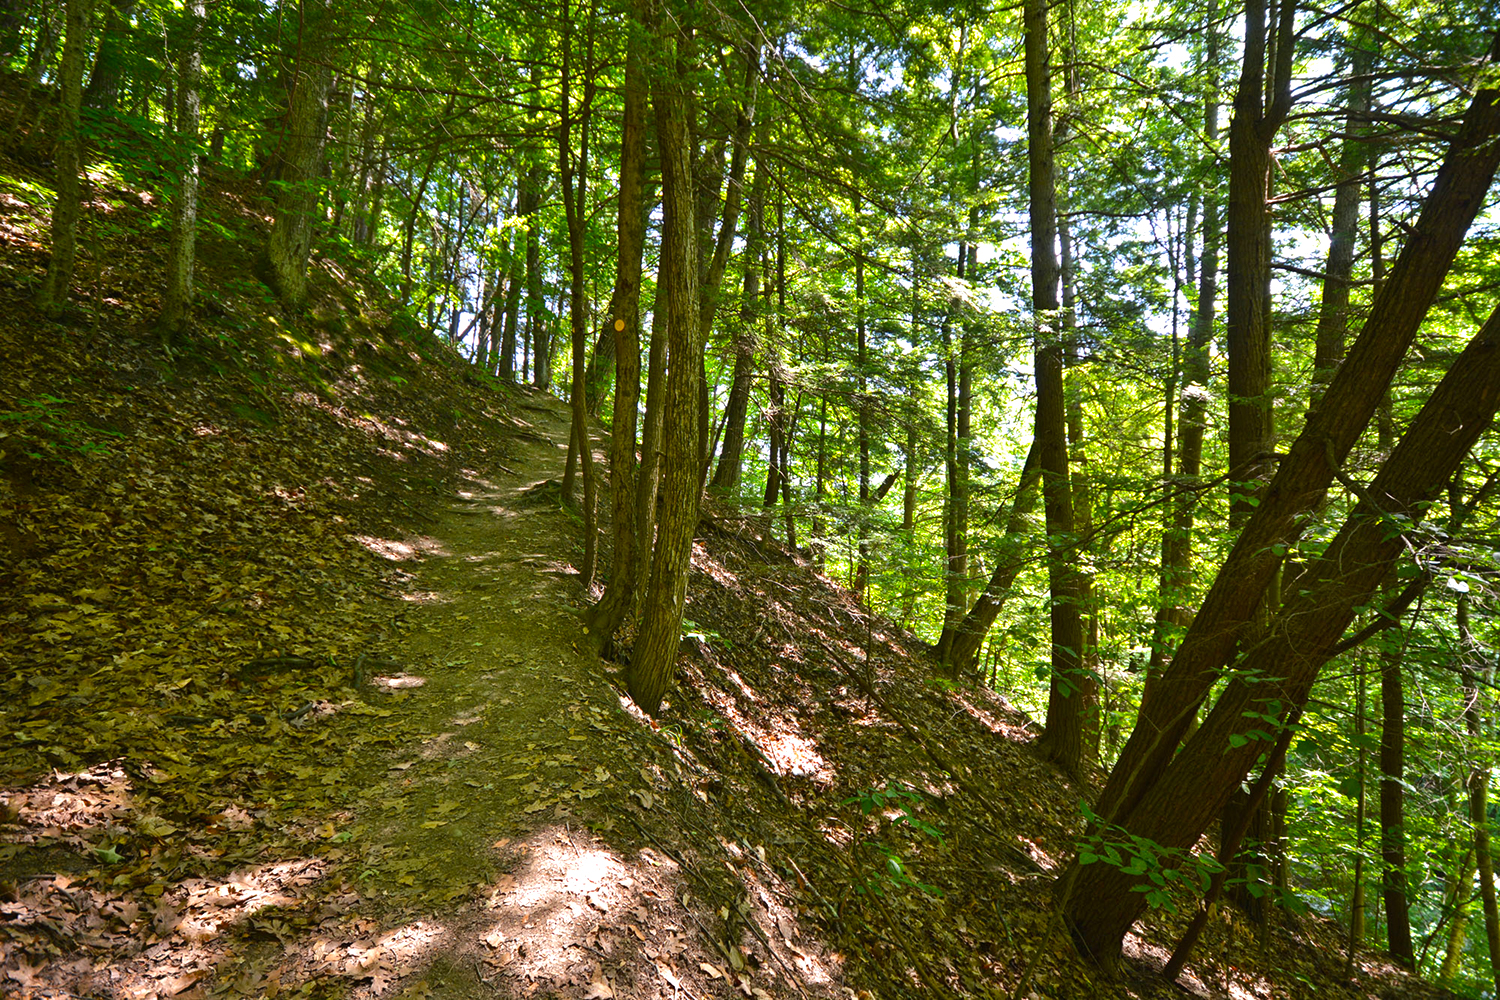 The only official trail down into the ravine, downstream from Upper Falls, is steep and narrow. © Dave Kraus